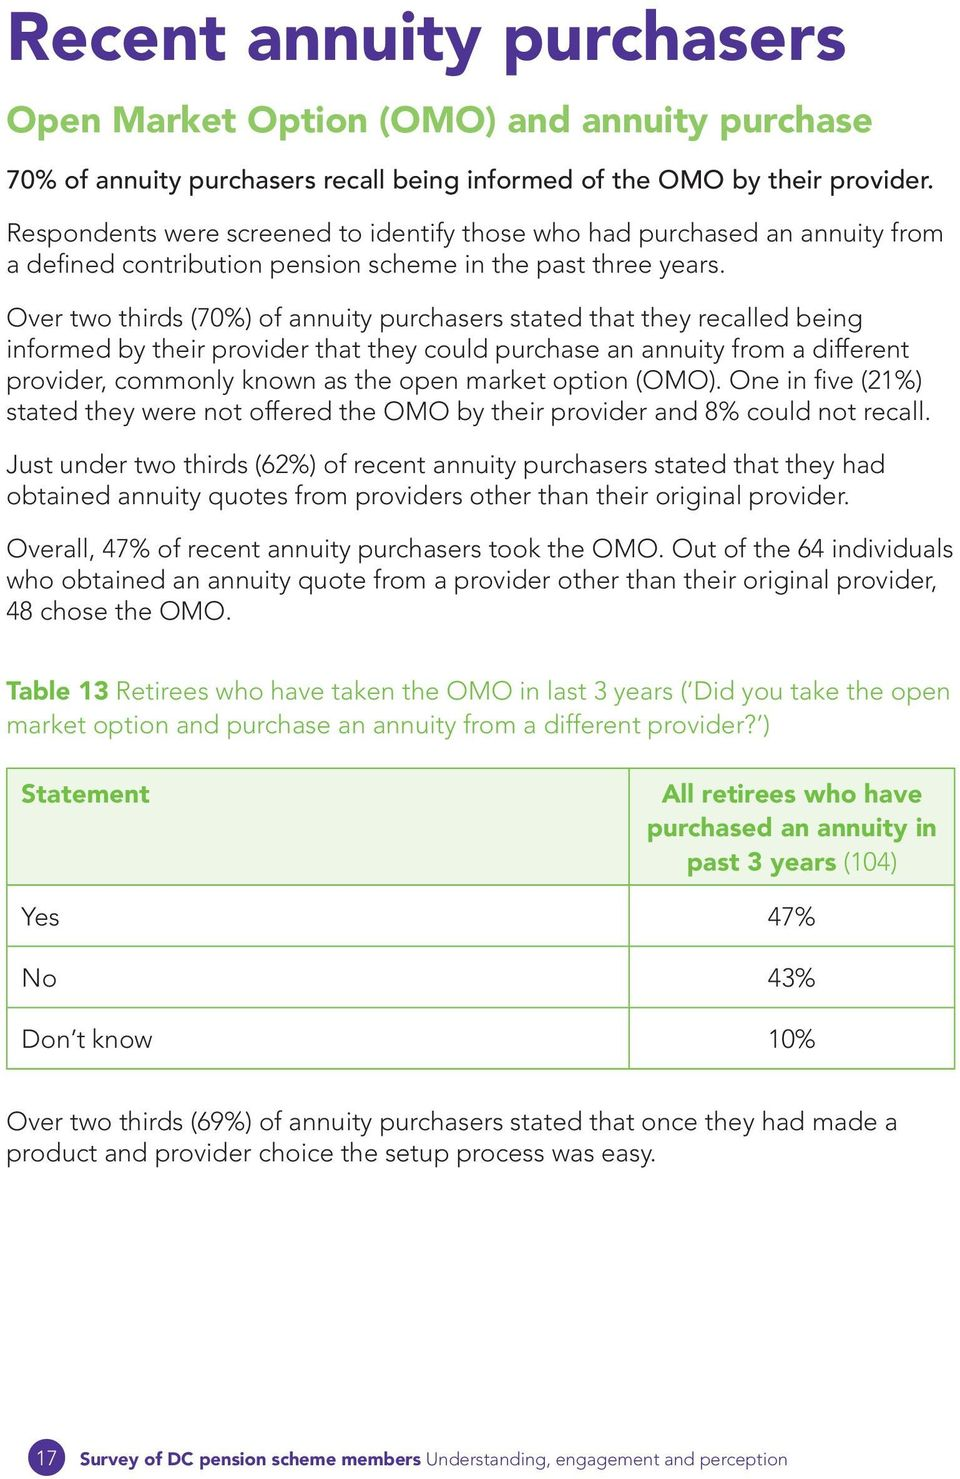 Over two thirds (70%) of annuity purchasers stated that they recalled being informed by their provider that they could purchase an annuity from a different provider, commonly known as the open market